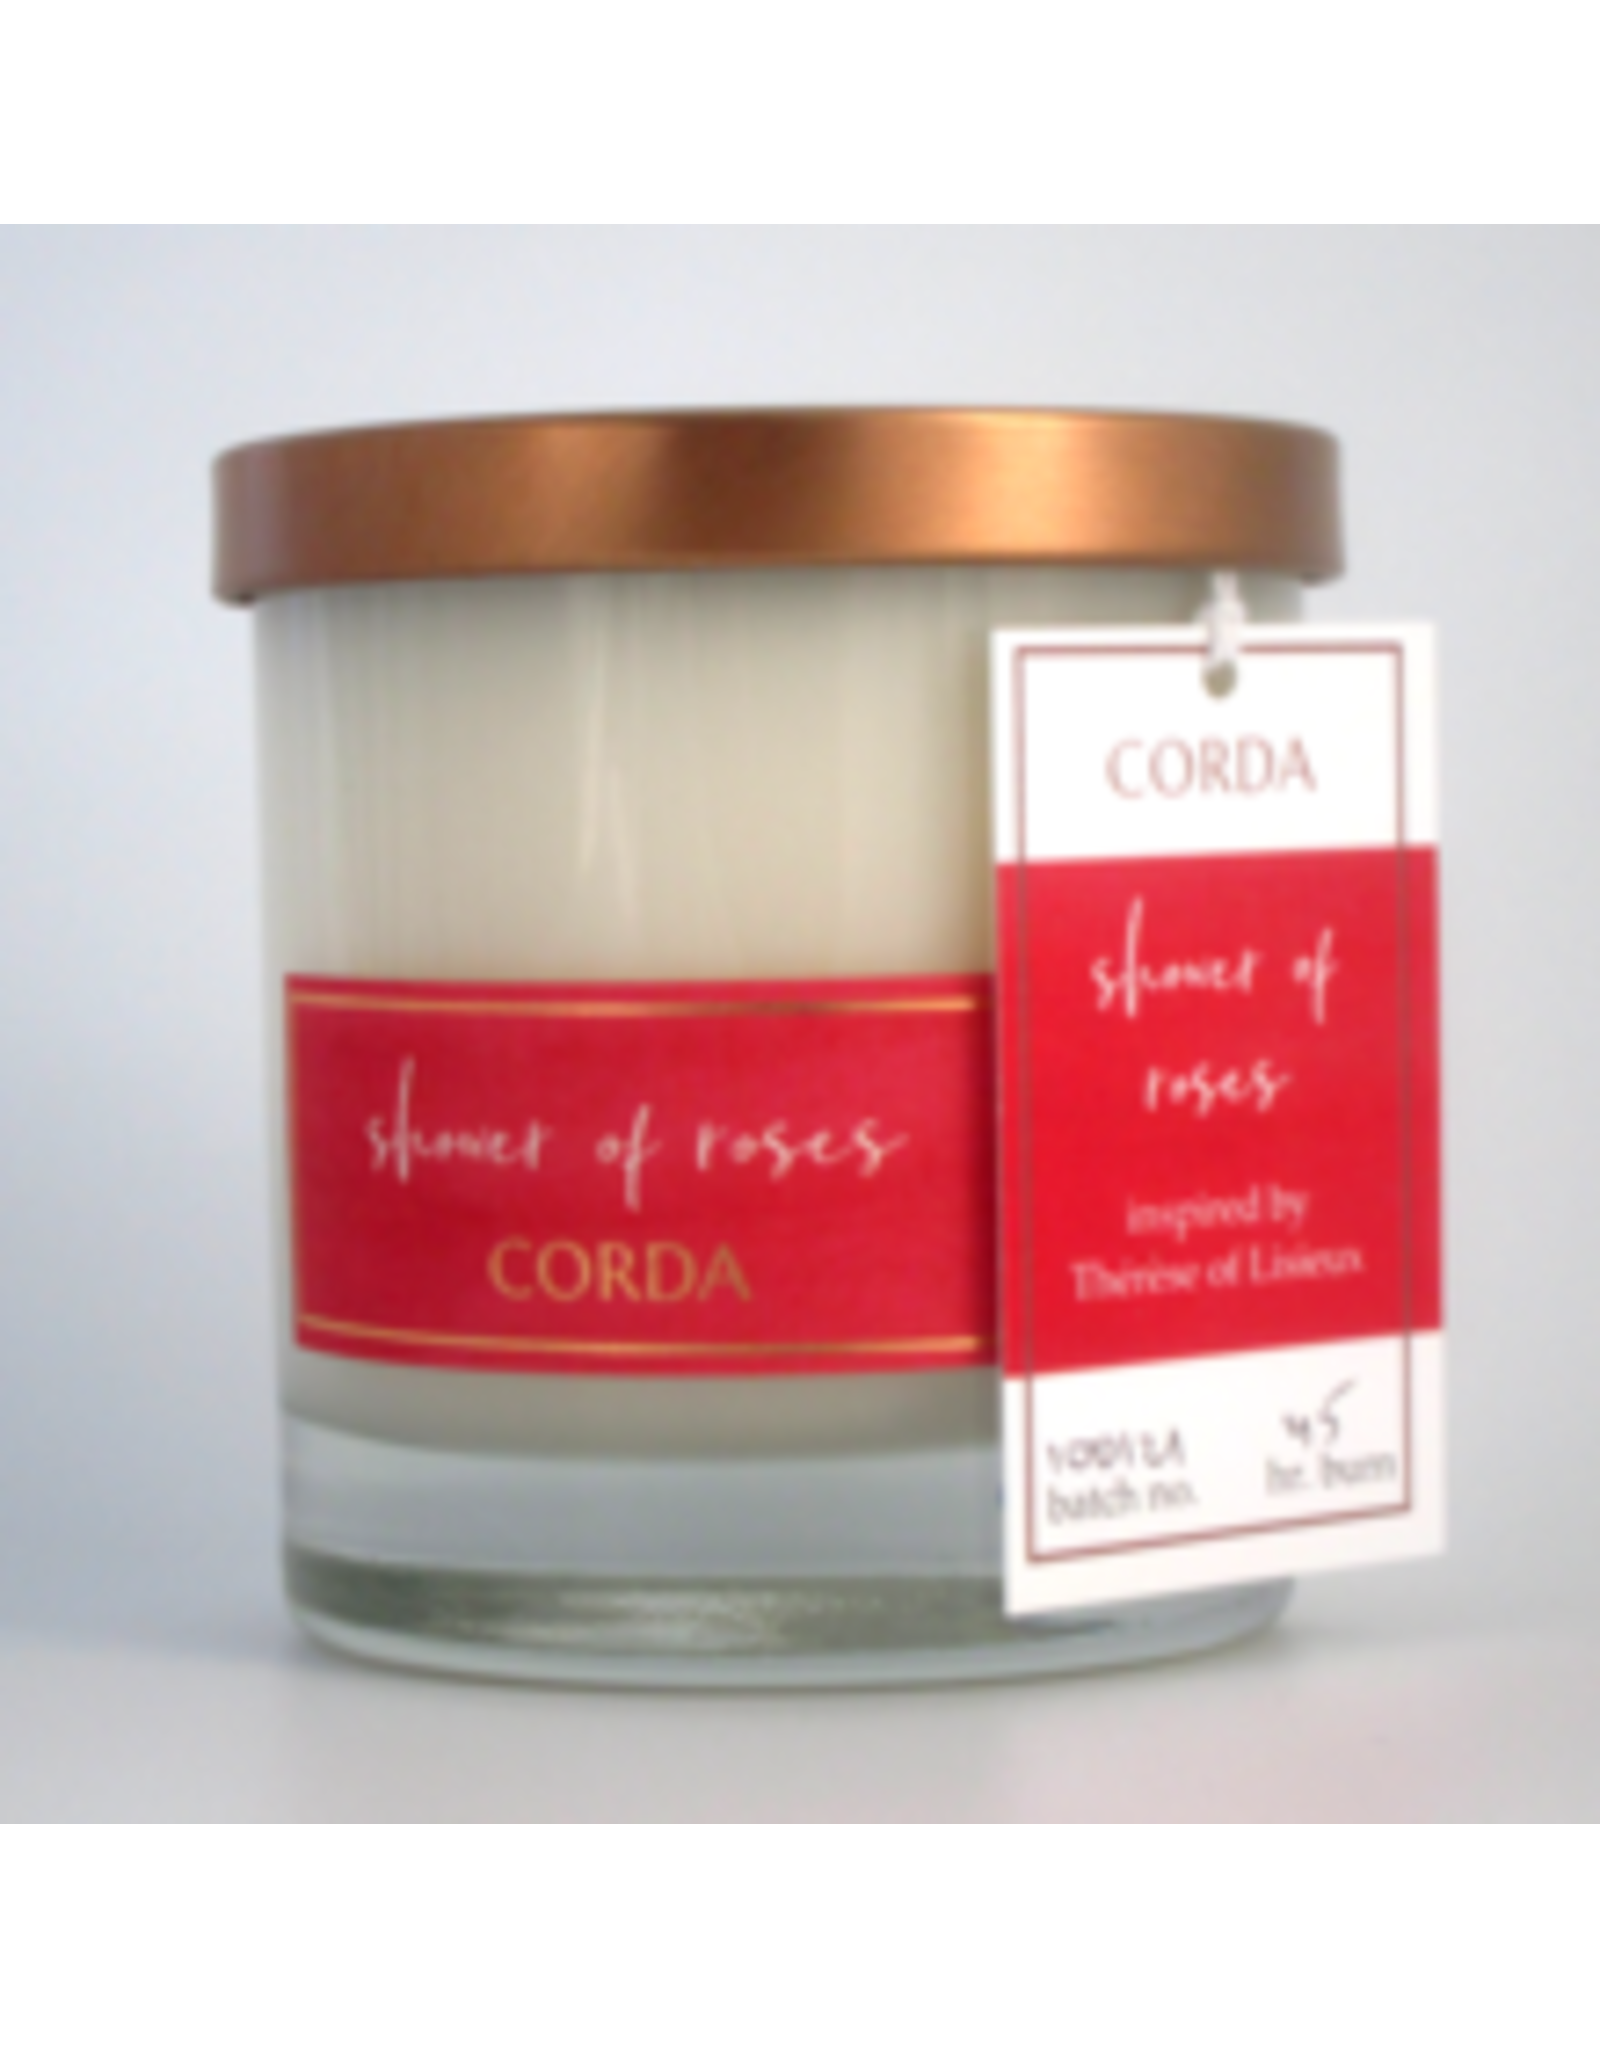 Corda Shower of Roses Candle-Therese of Lisieux